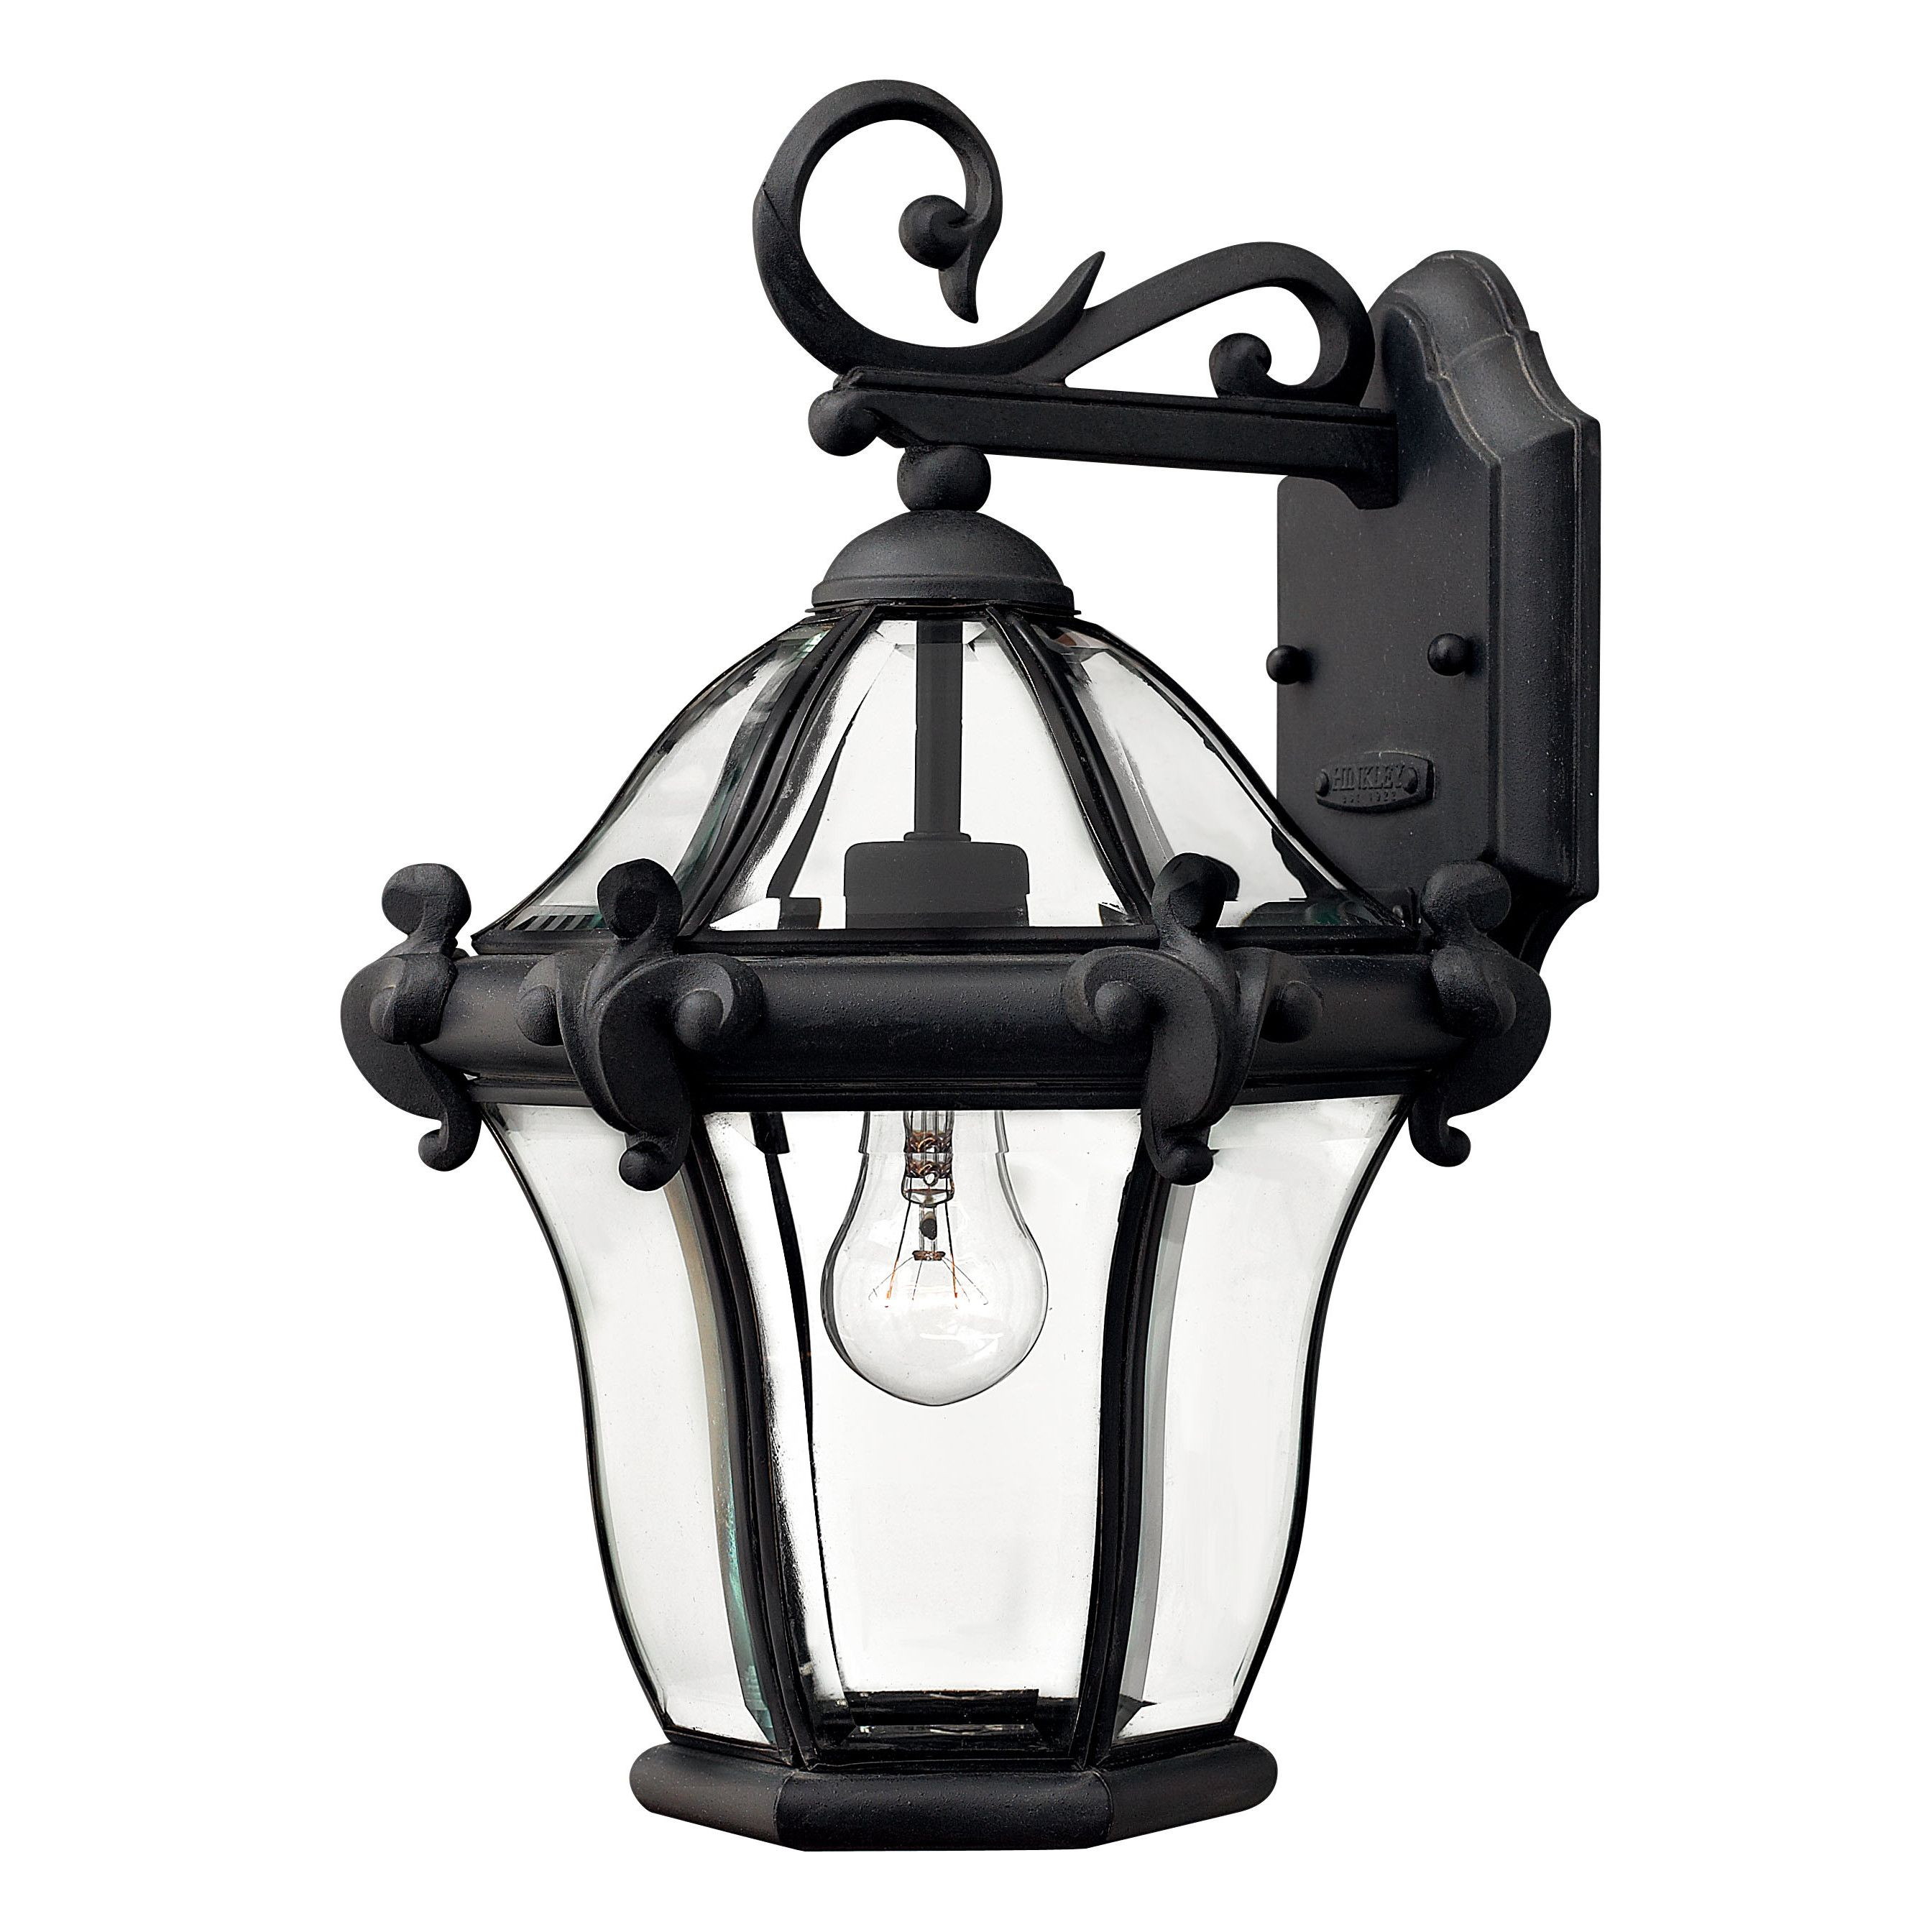 San Clemente Outdoor Wall Lantern Black Outdoor Wall